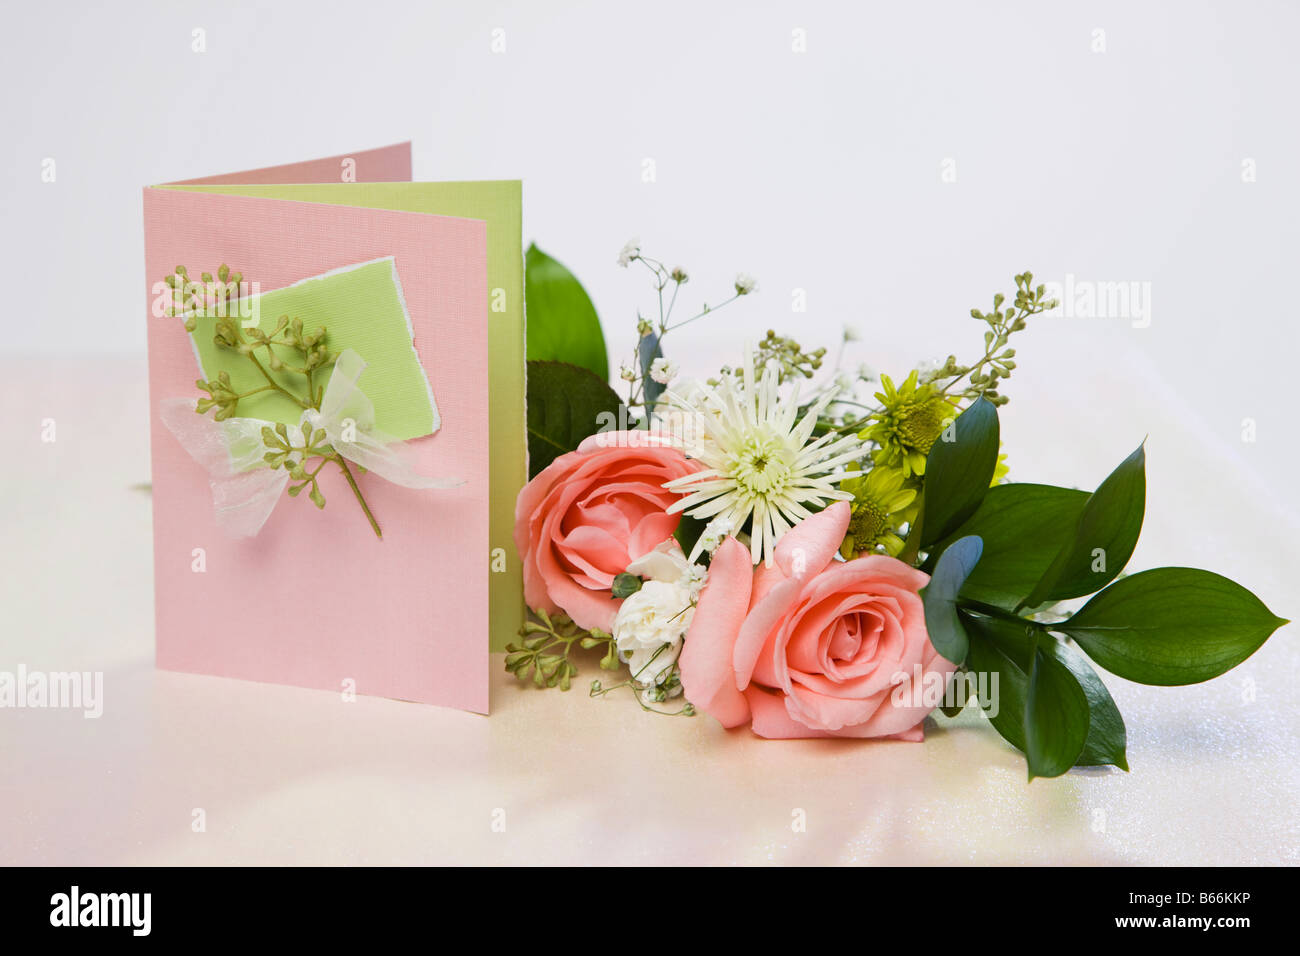 Flowers and greeting card - Stock Image